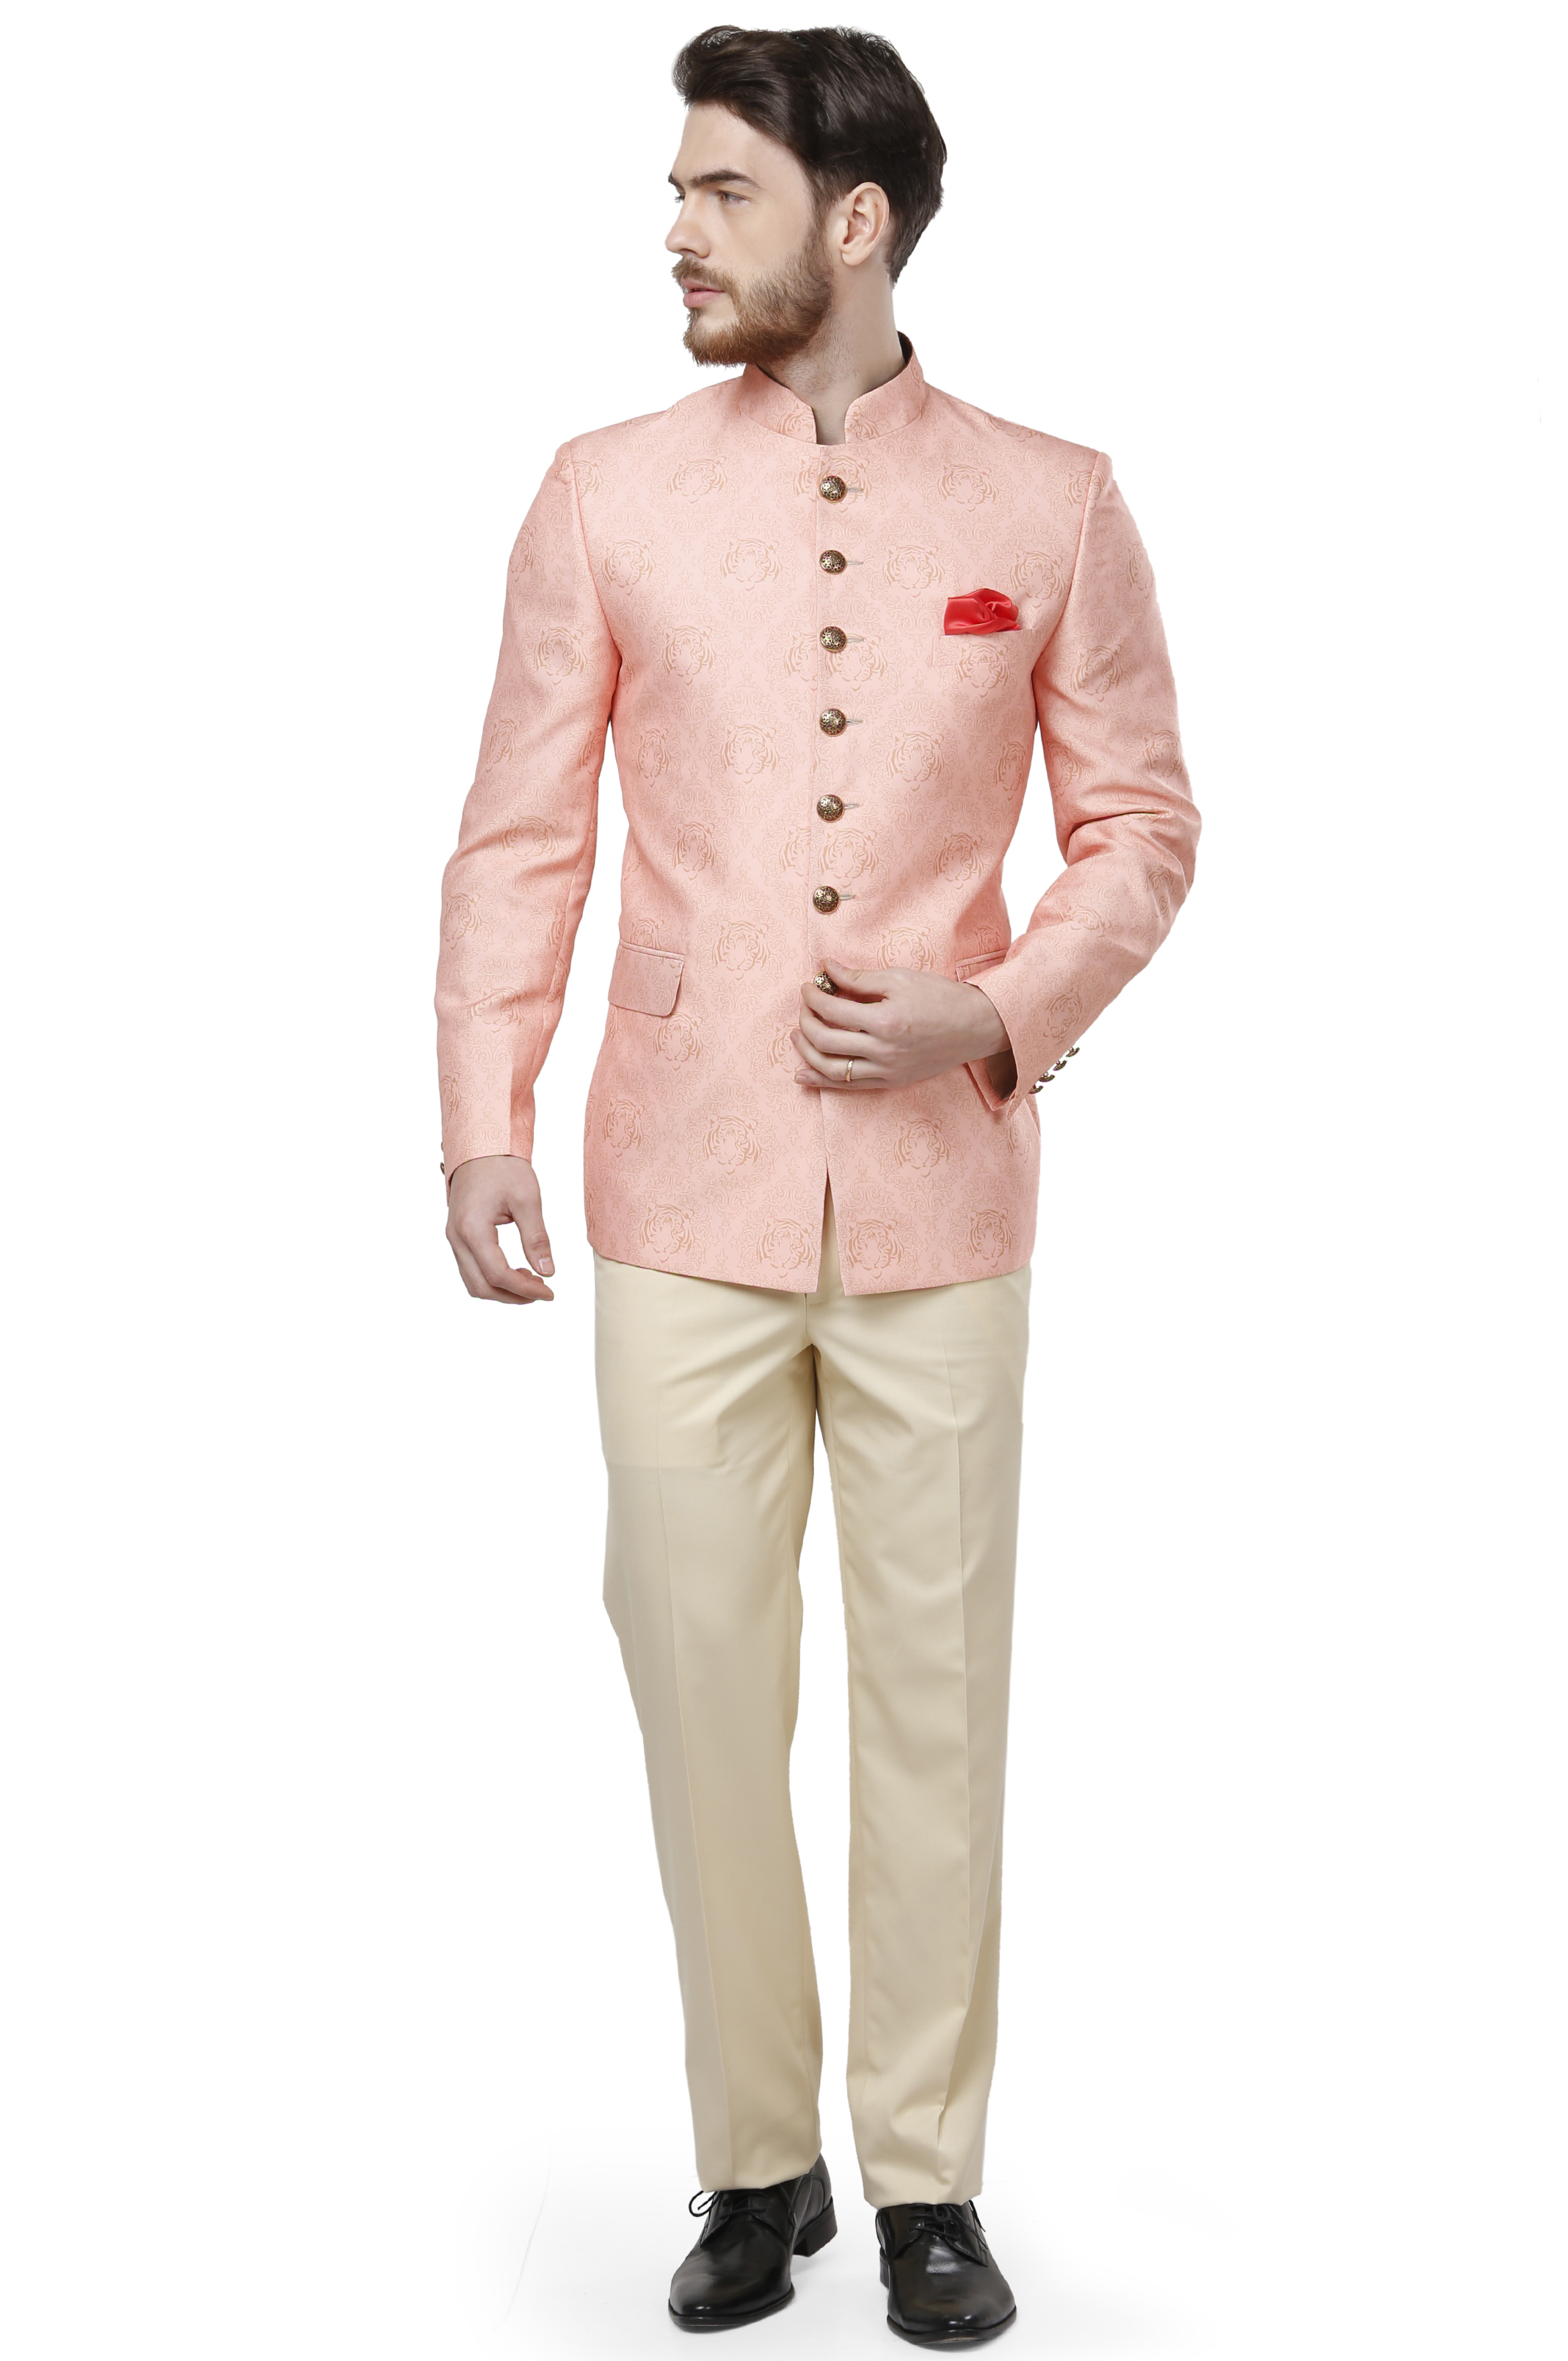 Get Stunning Pre-Wedding Men\'s Outfit Ideas By Brahaan! | FunctionMania